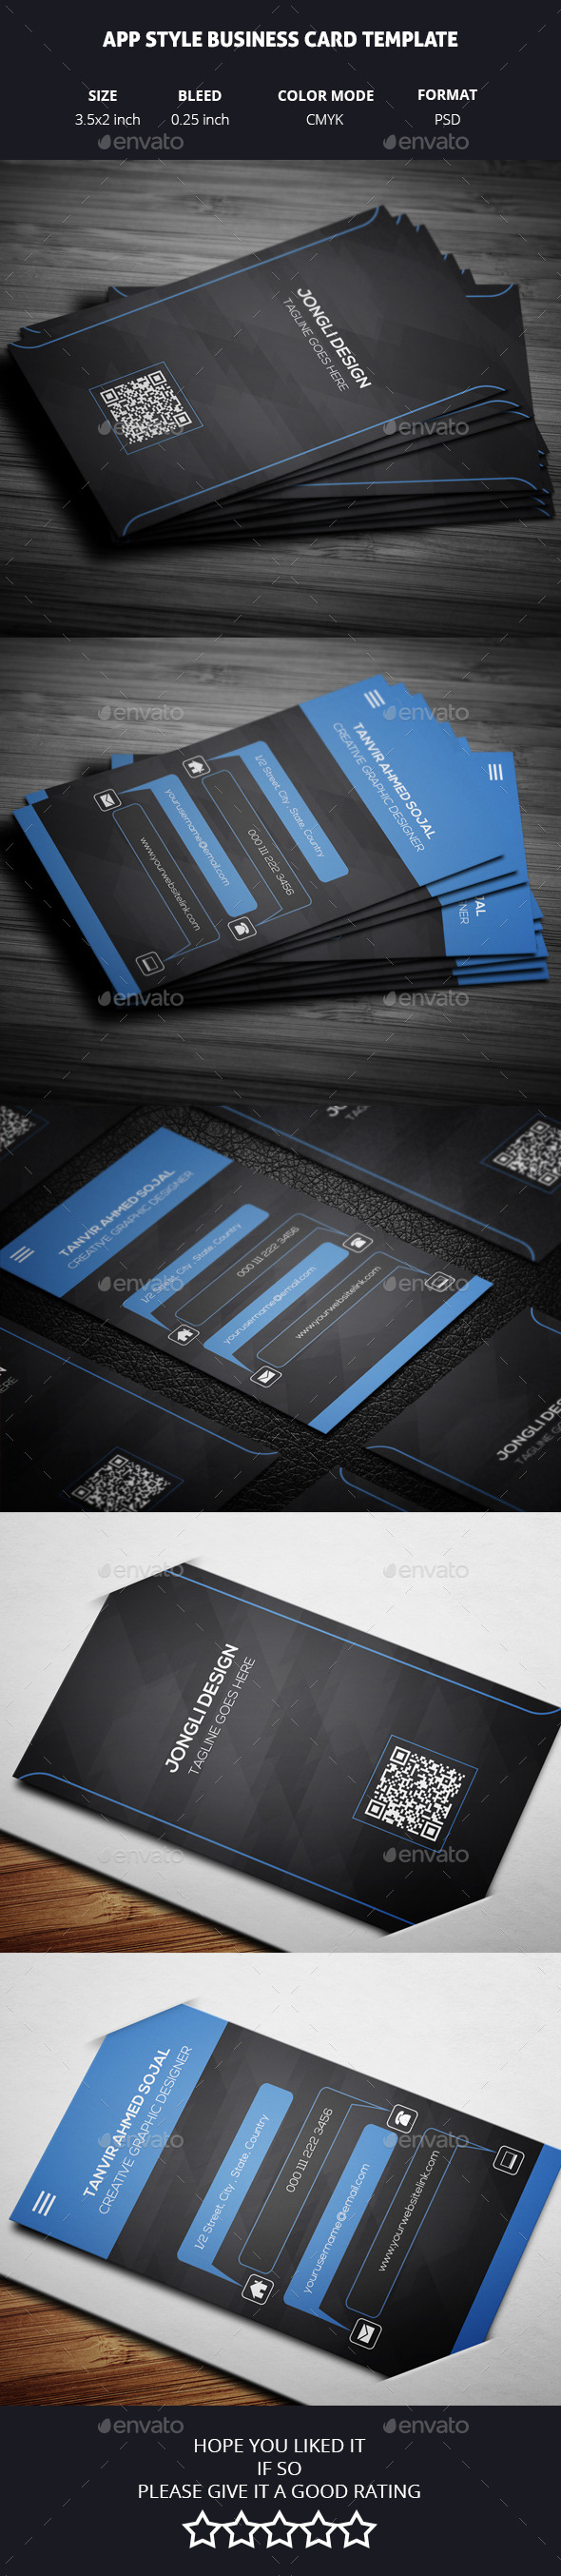 App style business card template by jongli graphicriver app style business card template creative business cards reheart Gallery